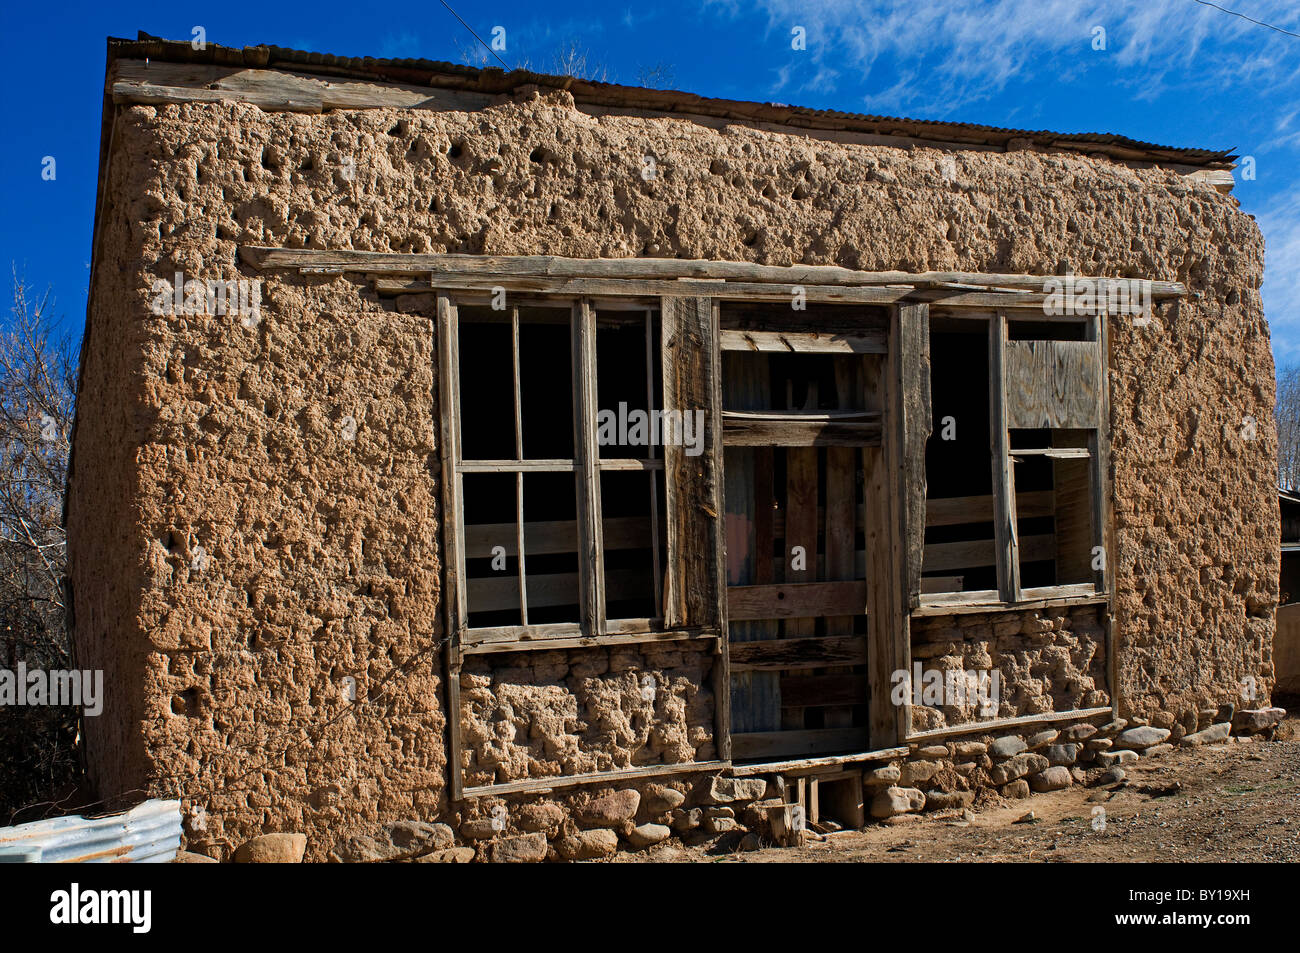 Old Adobe Building In Taos New Mexico Stock Photo Royalty